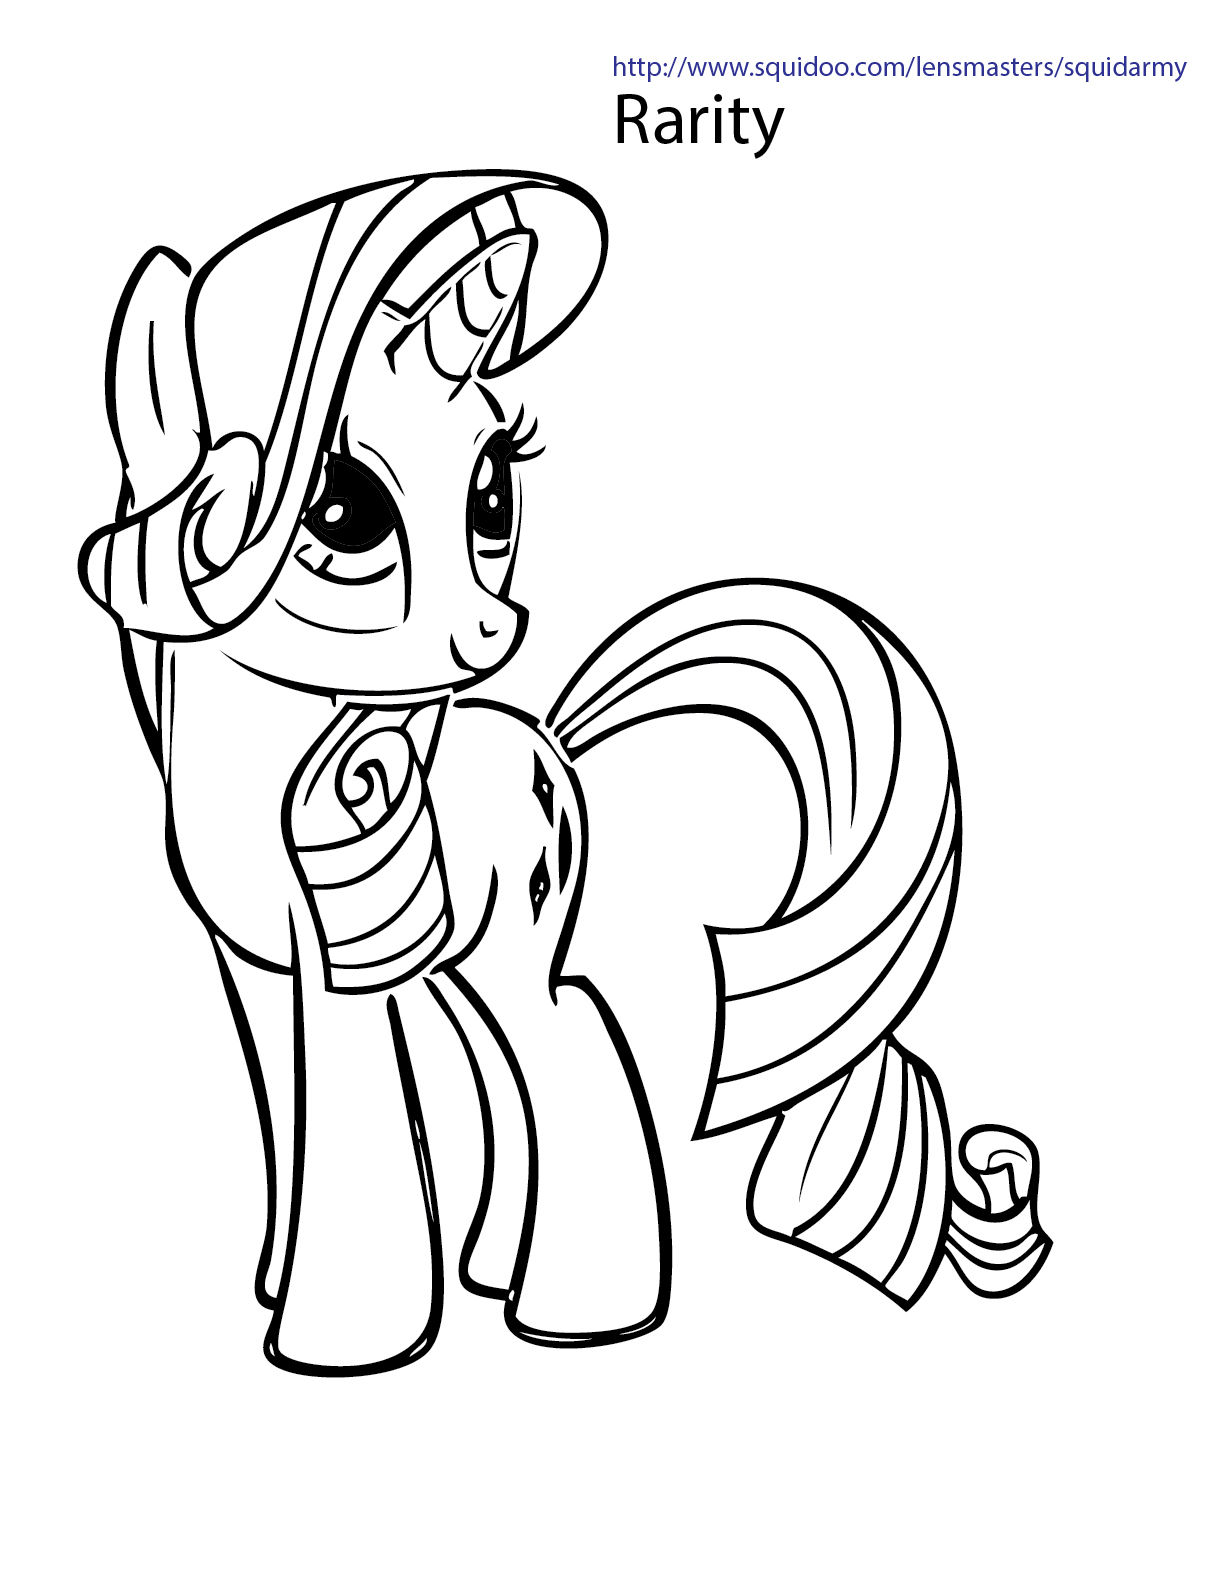 Free Coloring Pages Of Rarity Equestria Girl Rarity Equestria Coloring Page Free